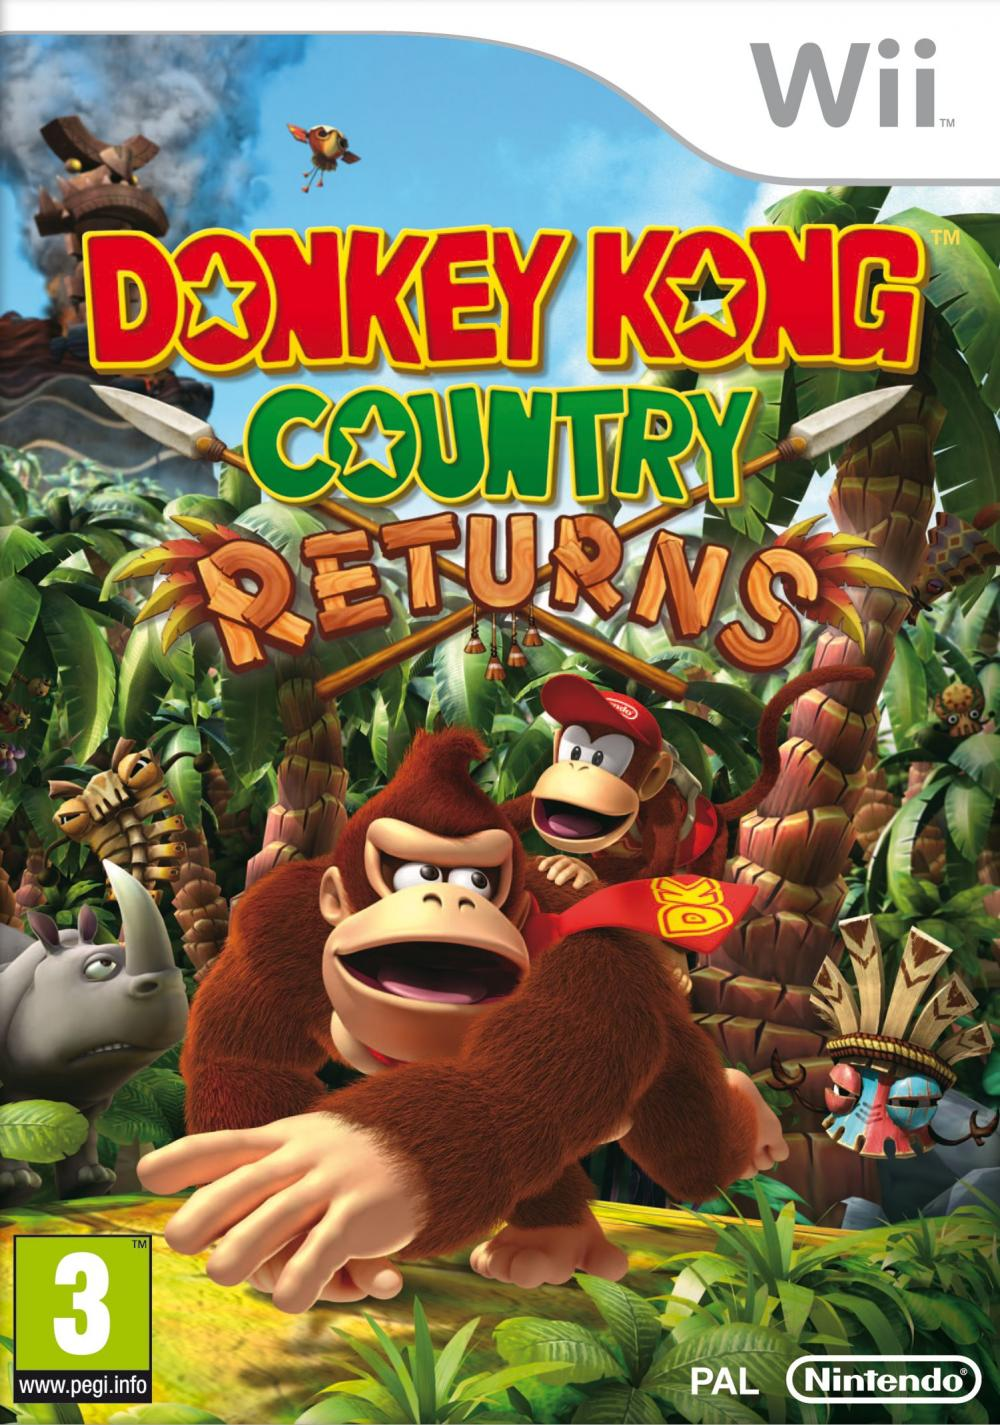 DONKEY KONG COUNTRY RET WII